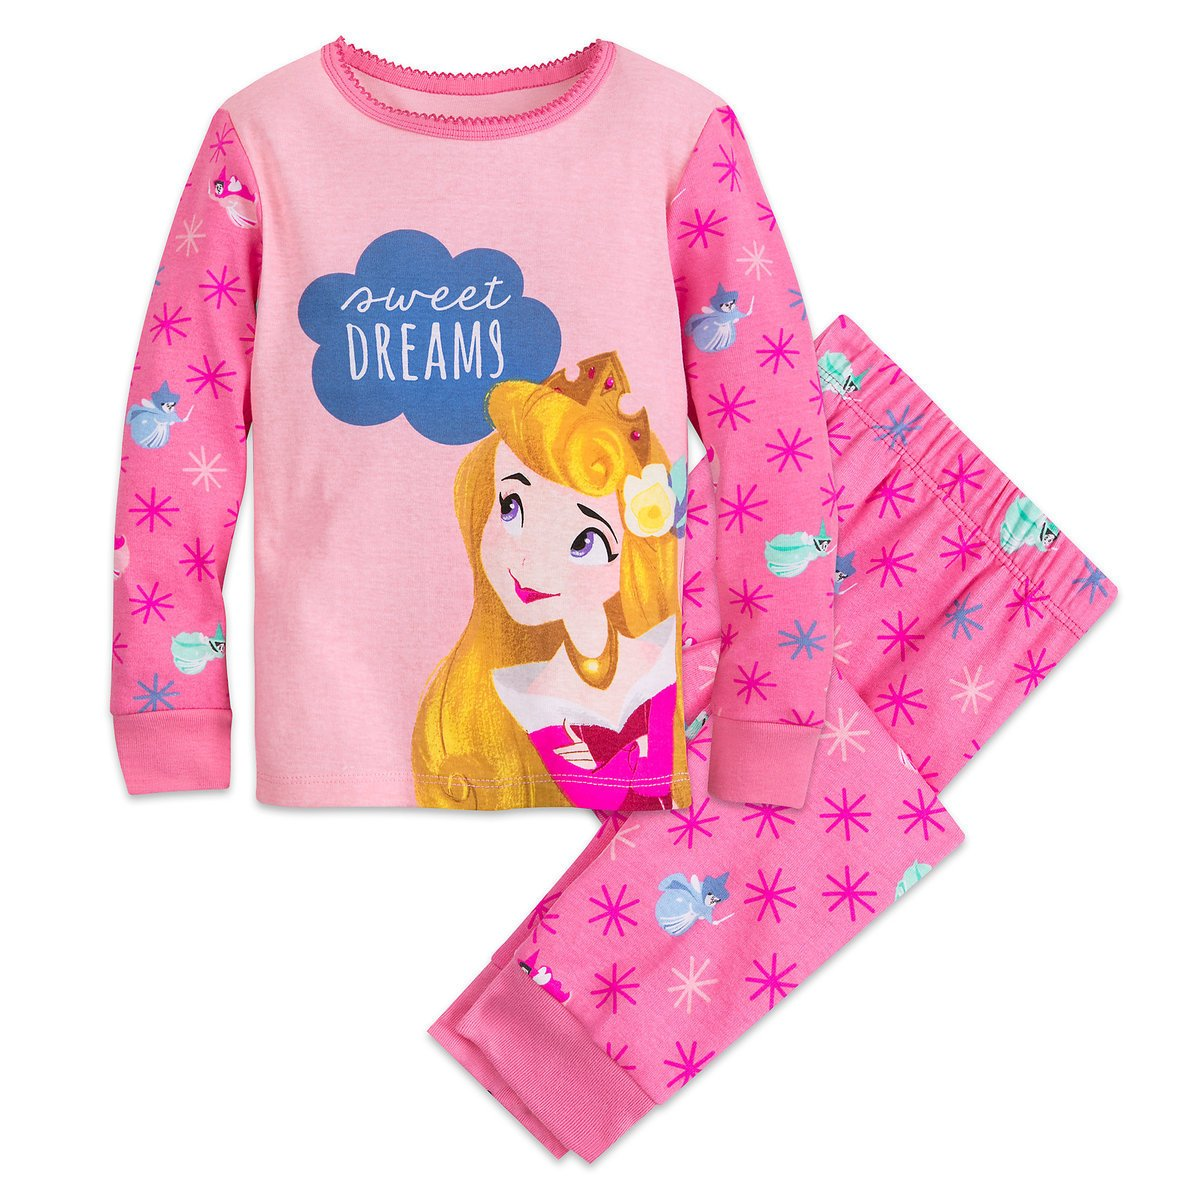 Disney Store Sleeping Beauty PJ PALS Set for Girls Princess  2018 Size 5 sold AZ 2020